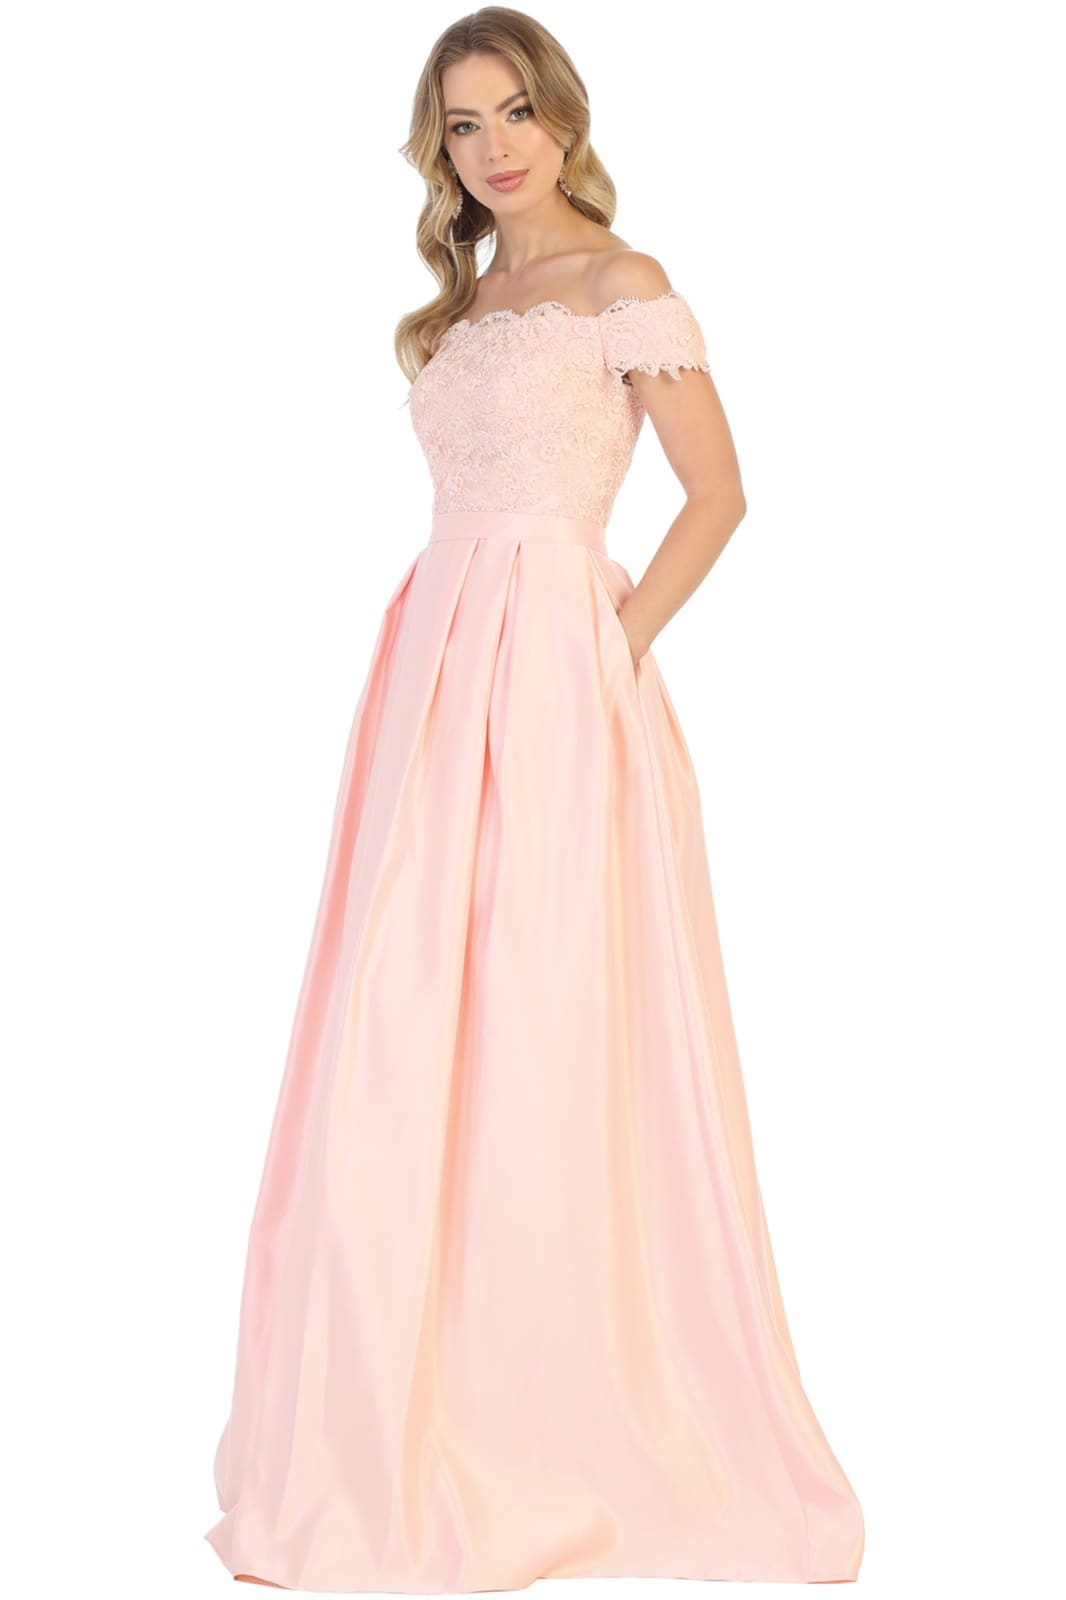 Off Shoulder Evening Gown with Pockets - LA1762 - BLUSH / 4